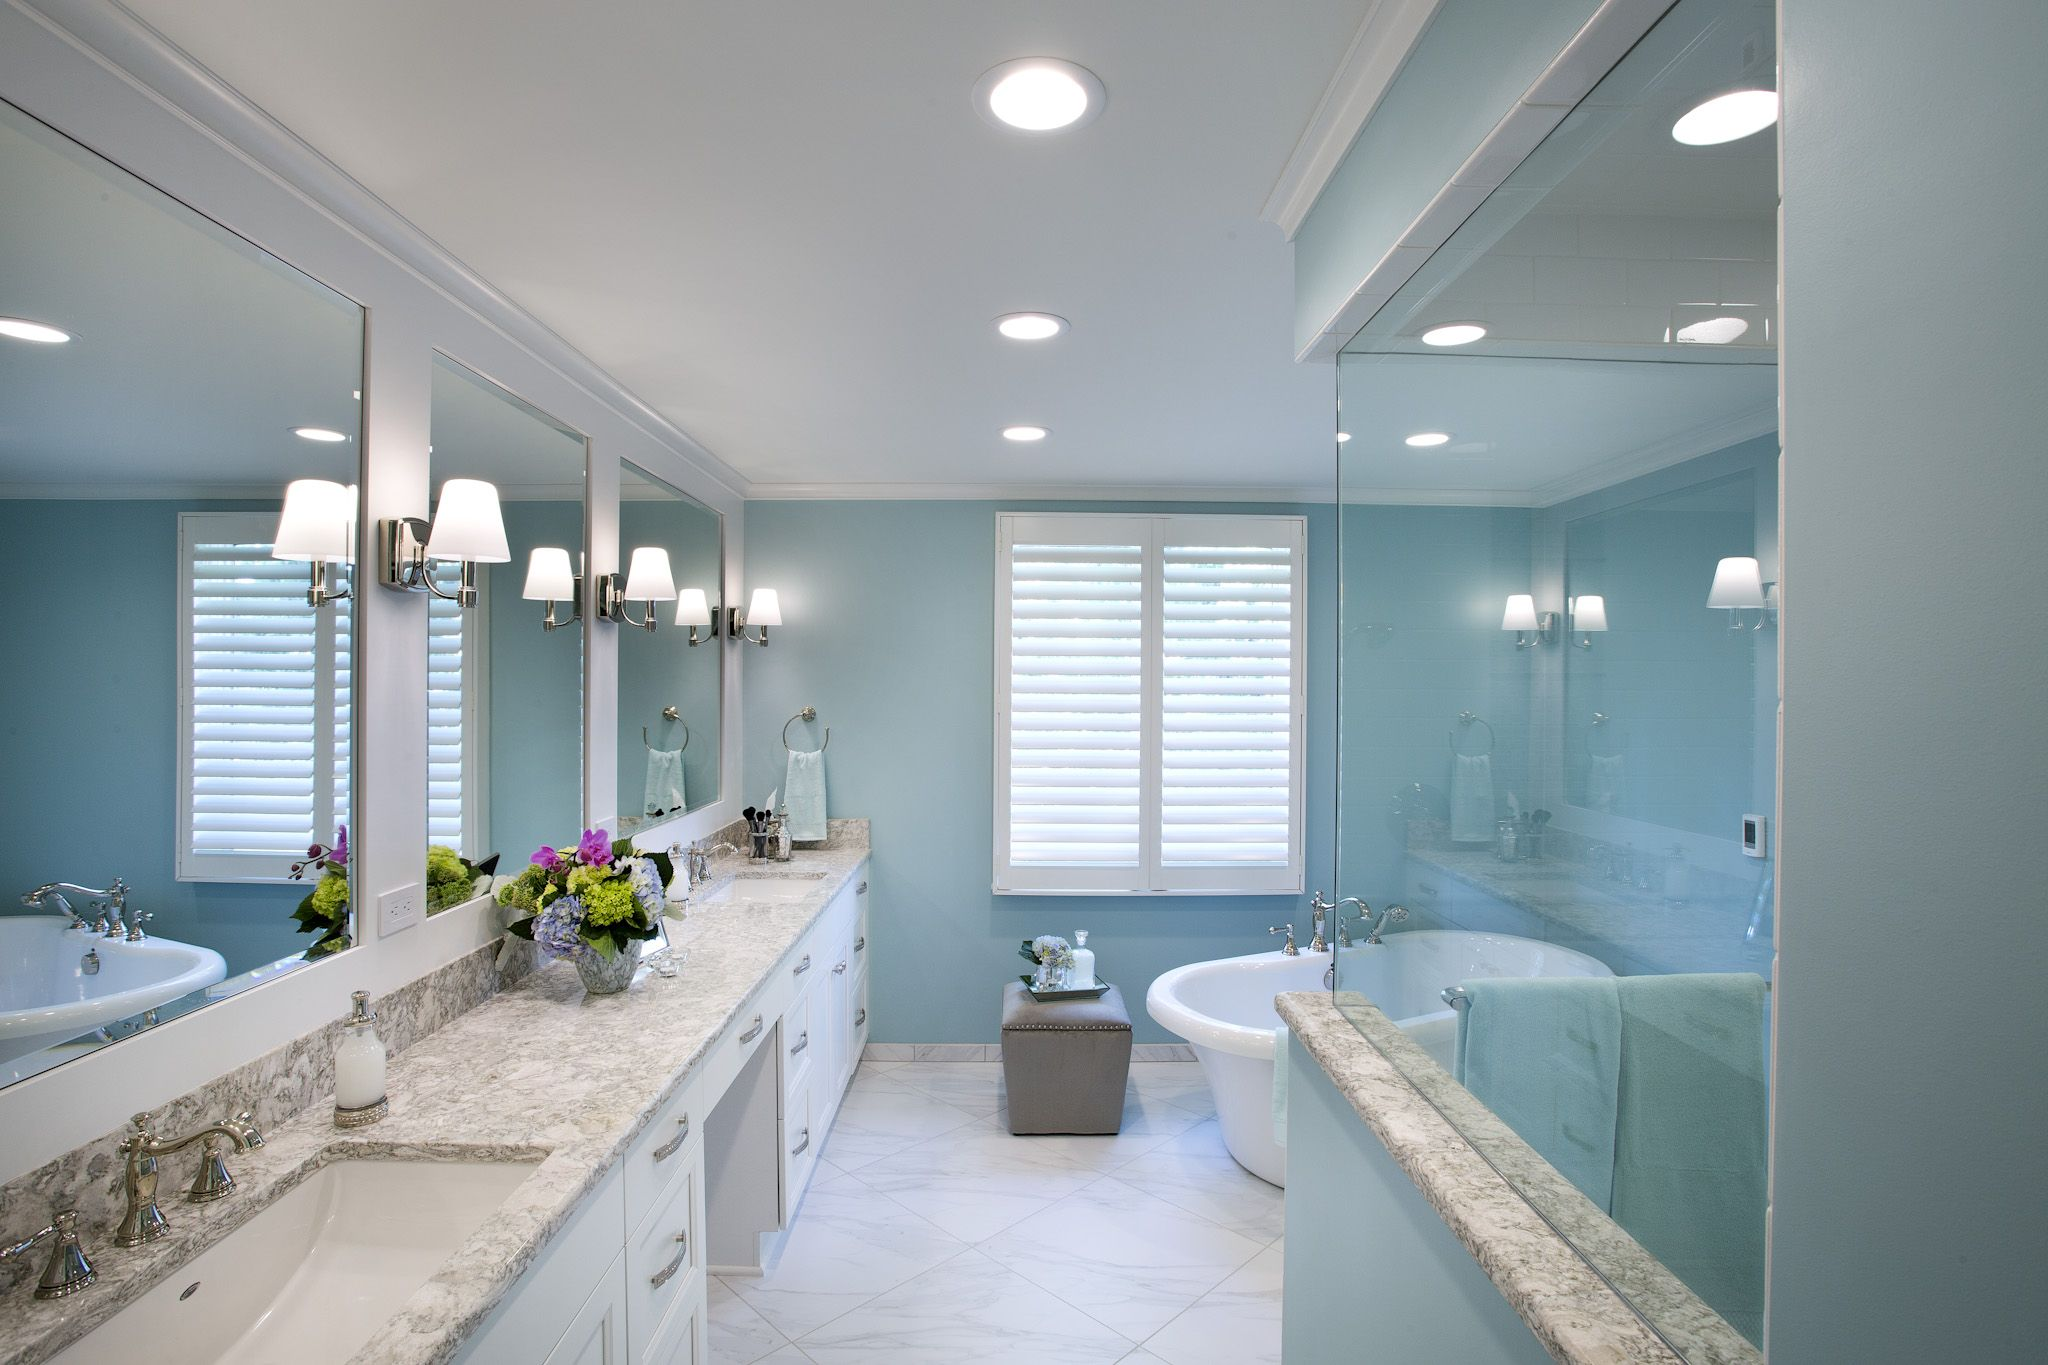 Kitchen bathroom solutions - Mark Anderson Of Persona Kitchen Bath Solutions Llc In Wichita Ks Sent These